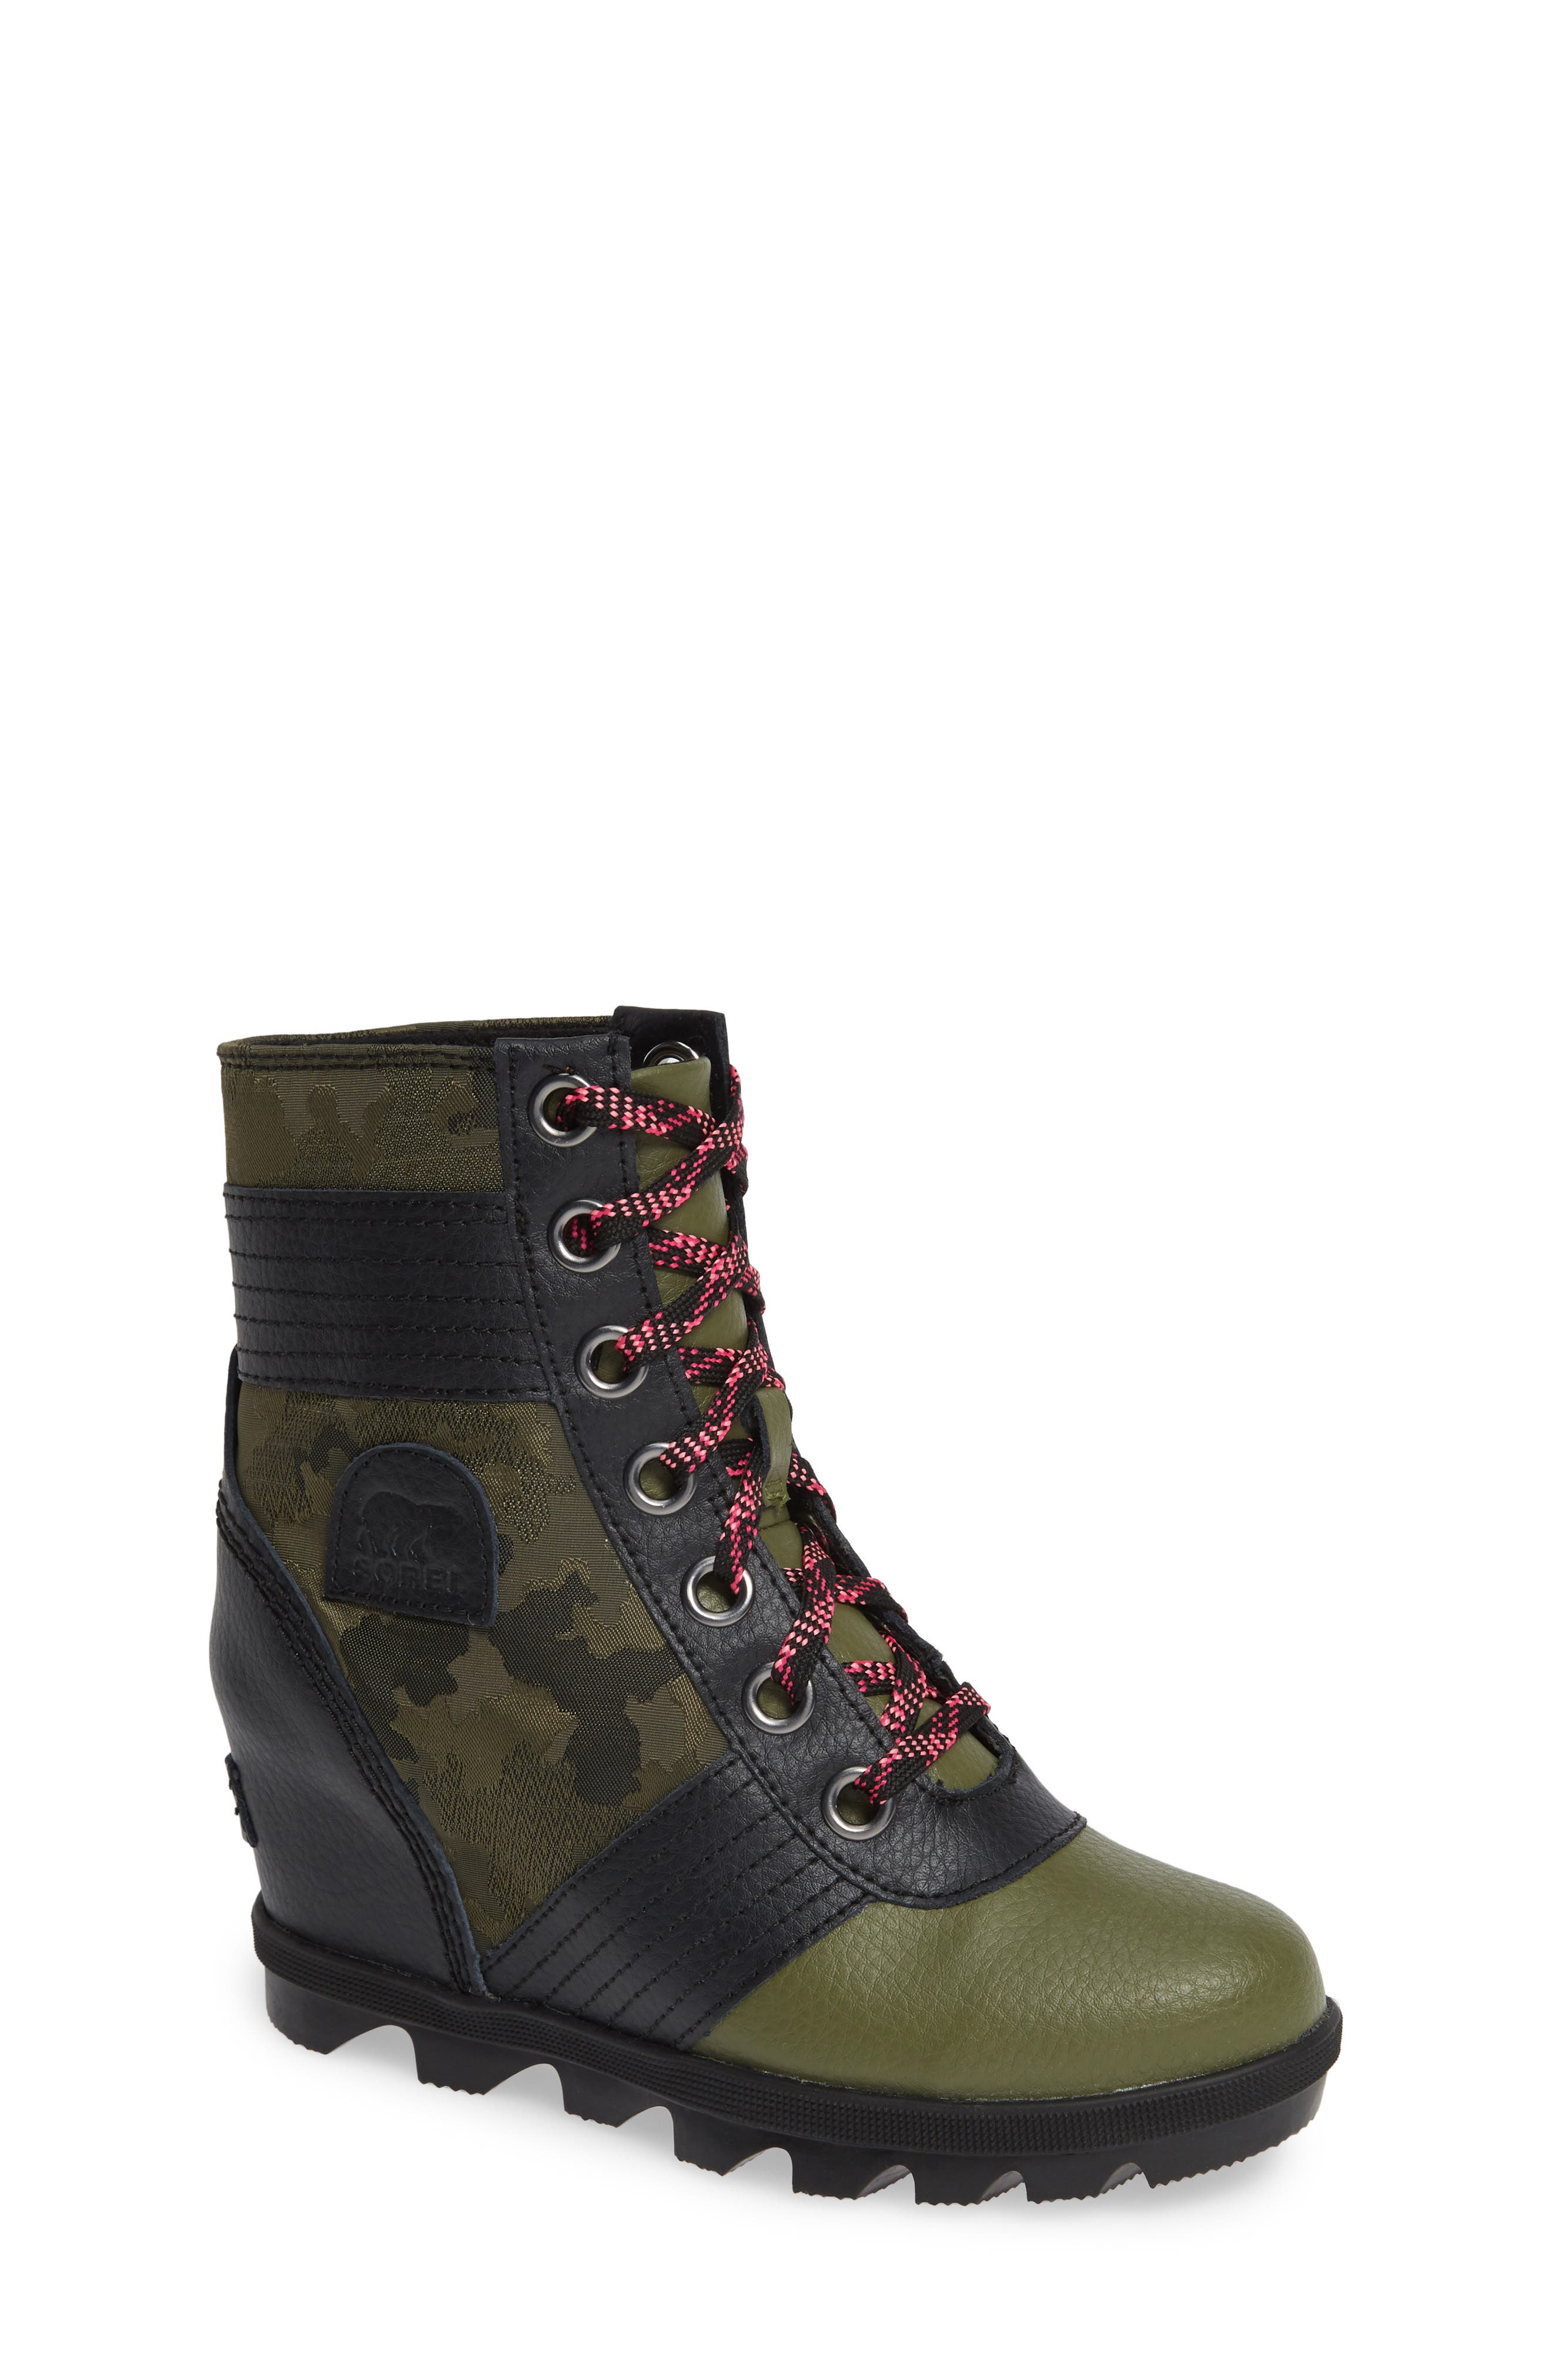 Lexie Waterproof Wedge Bootie,                         Main,                         color, HIKER GREEN/ BLACK